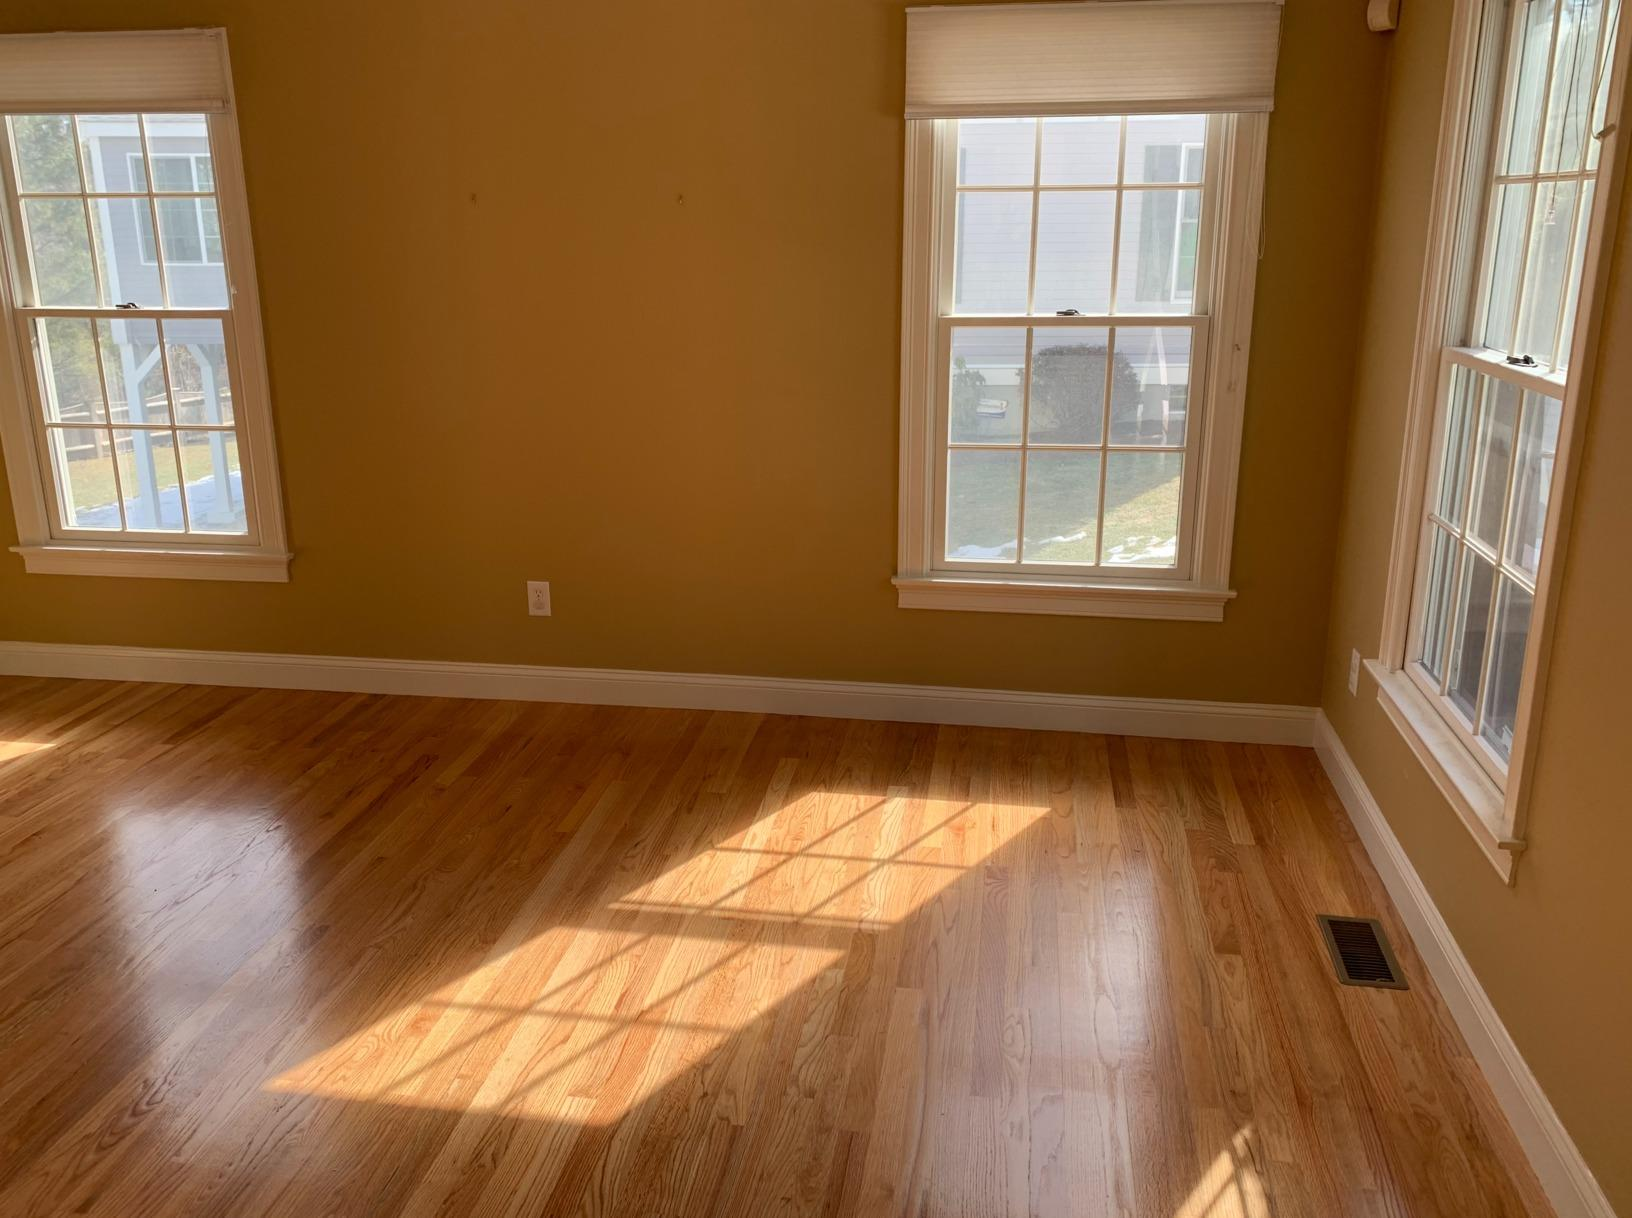 Furniture Removal in Needham Heights, MA - After Photo